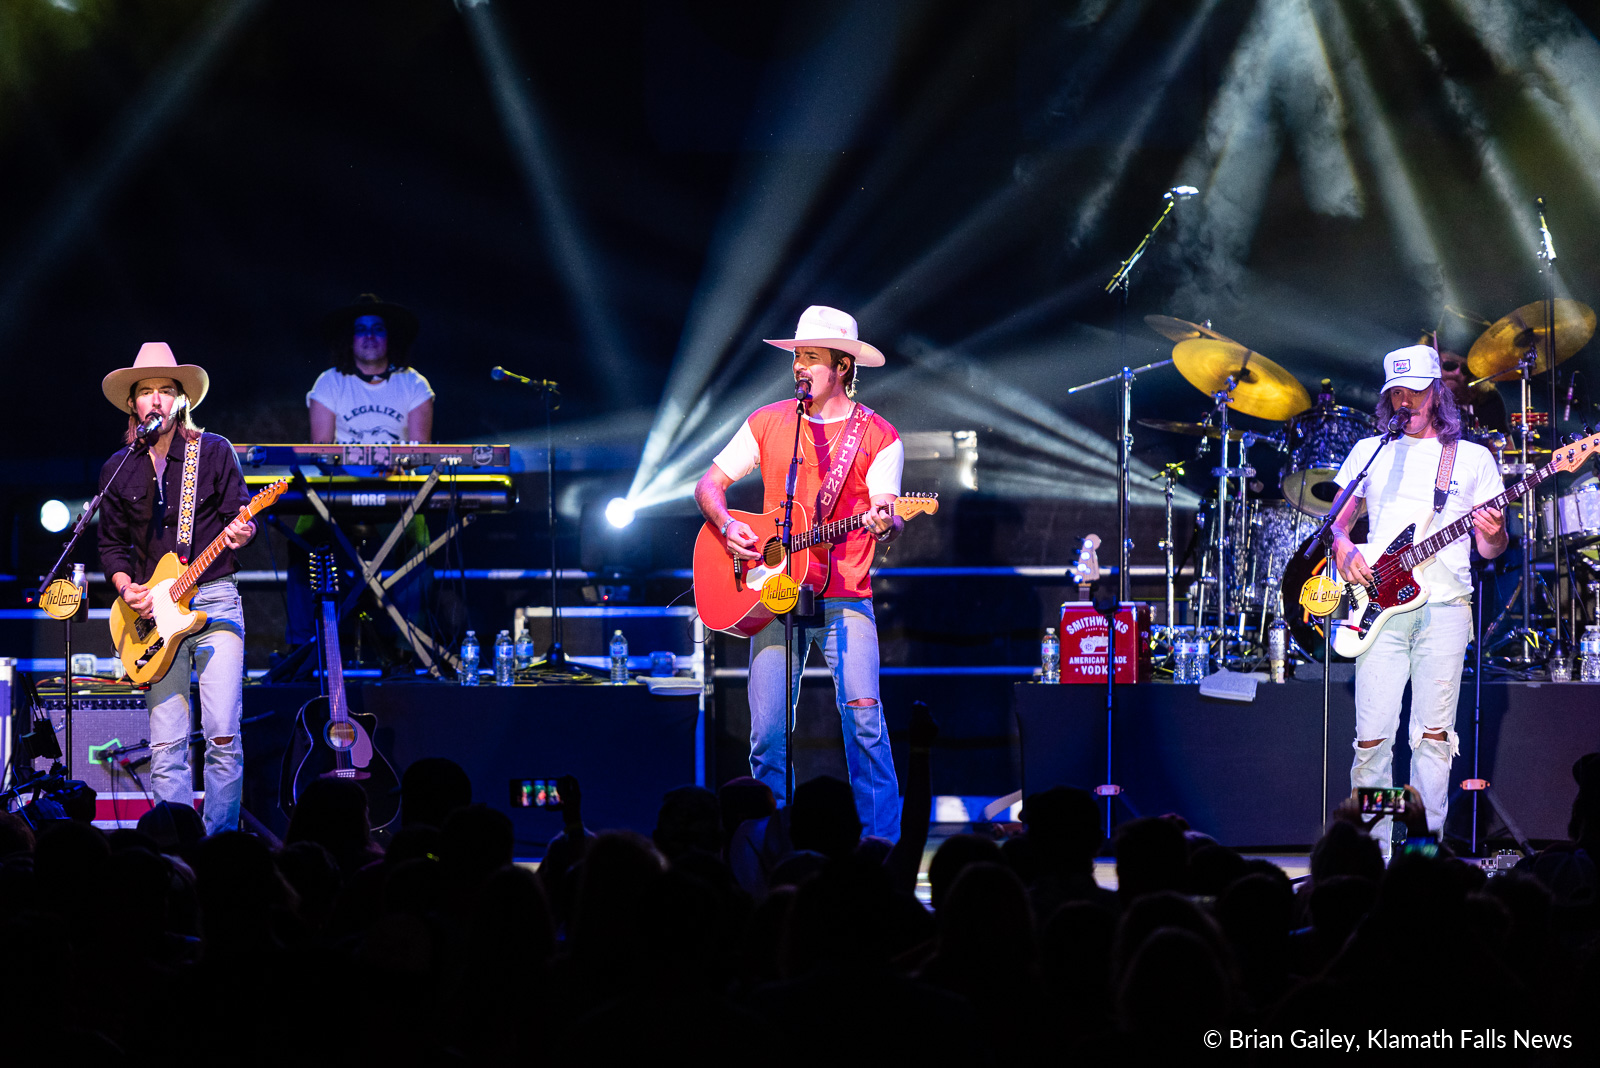 Midland performs inside the Klamath County Event Center as the Thursday entertainment headliner at the 2019 Klamath County Fair. August 1, 2019. (Image, Brian Gailey / Klamath Falls News)